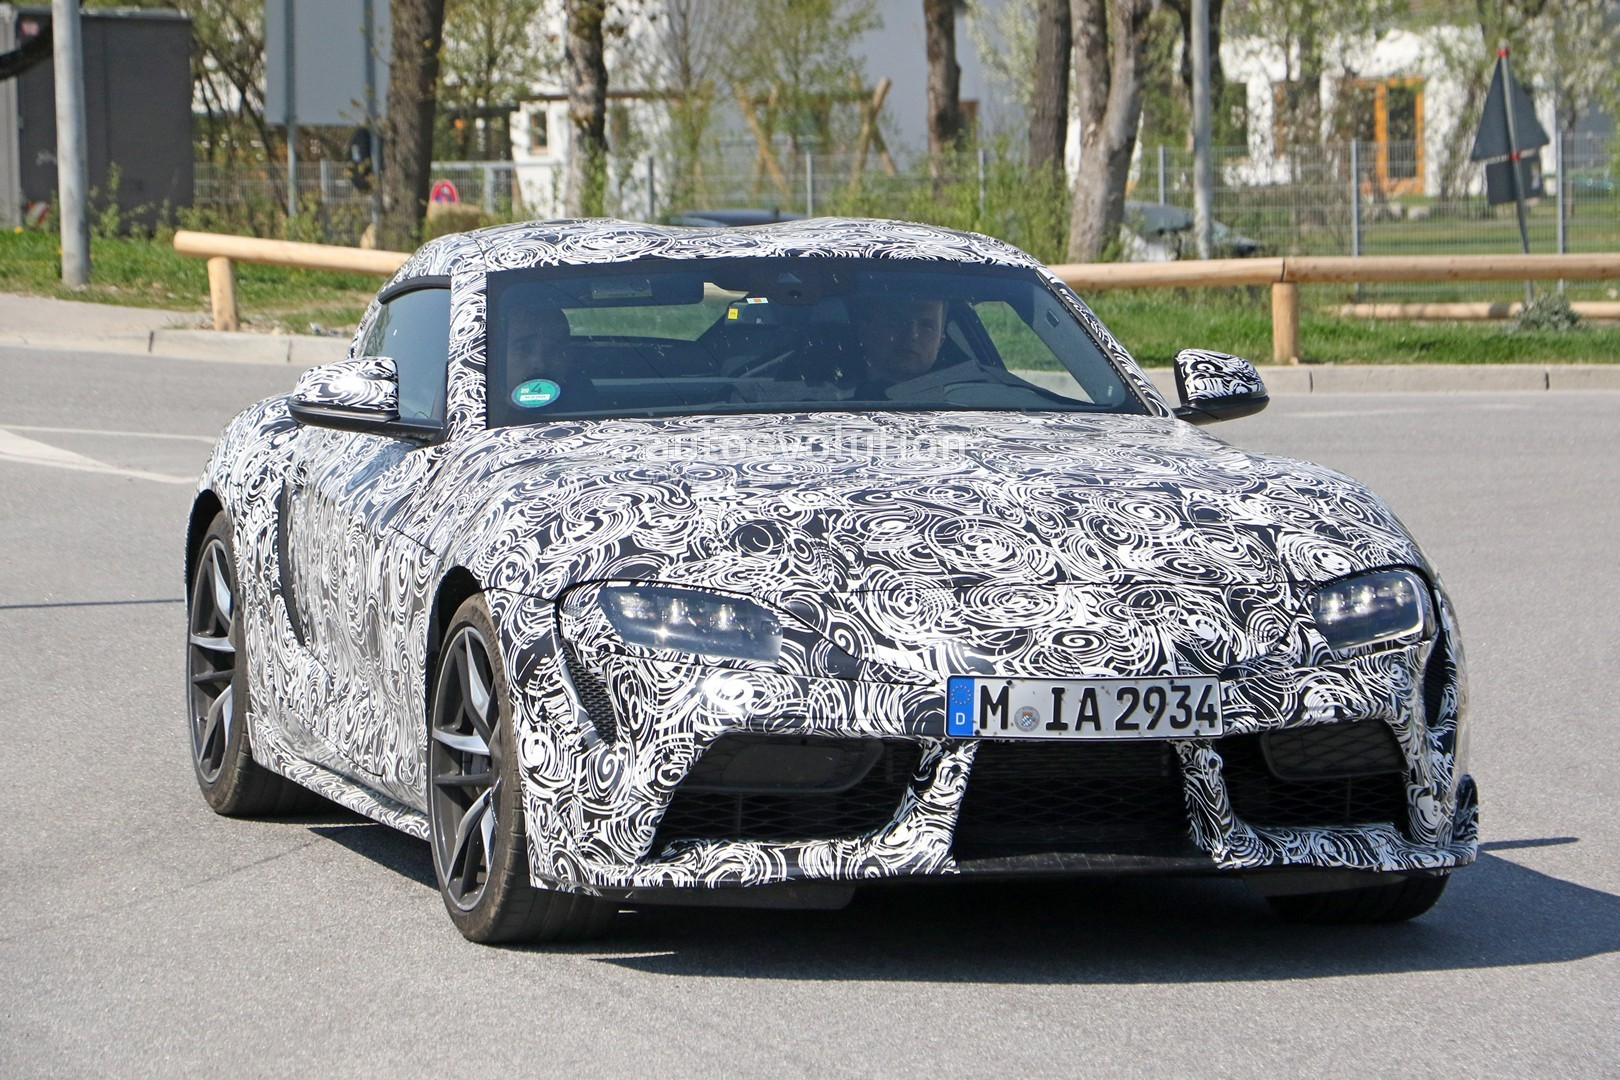 2019 Toyota Supra Spied At The Nurburgring With Bmw M4 Gts